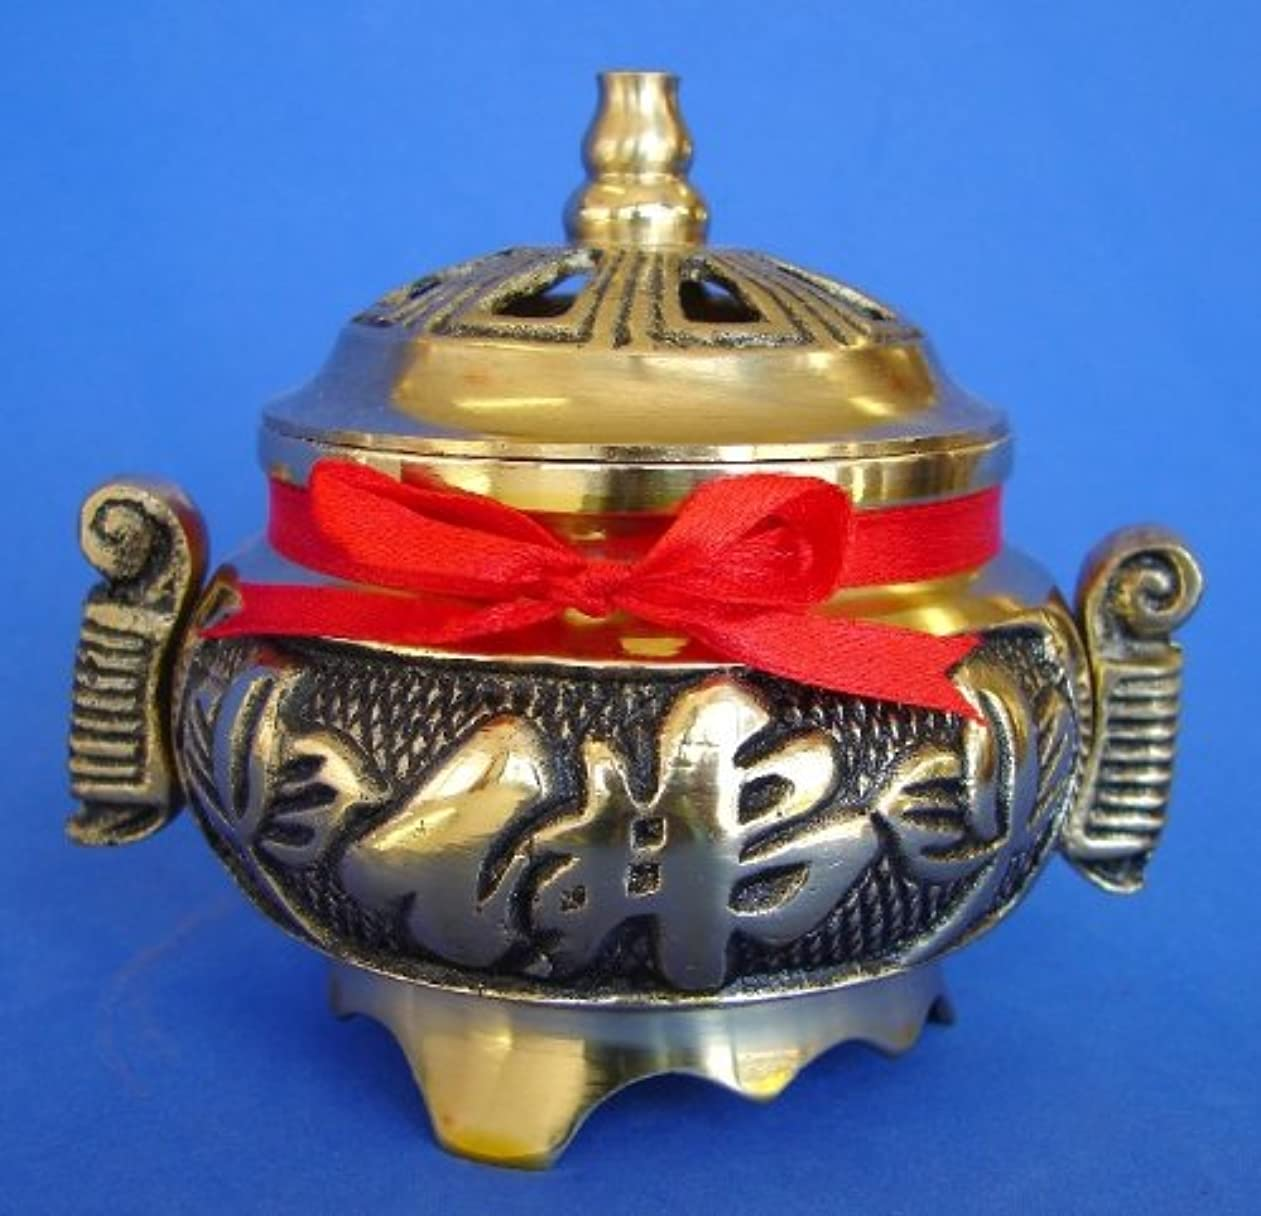 だます証明整理するBrass Incense Burner for Cone Incenses